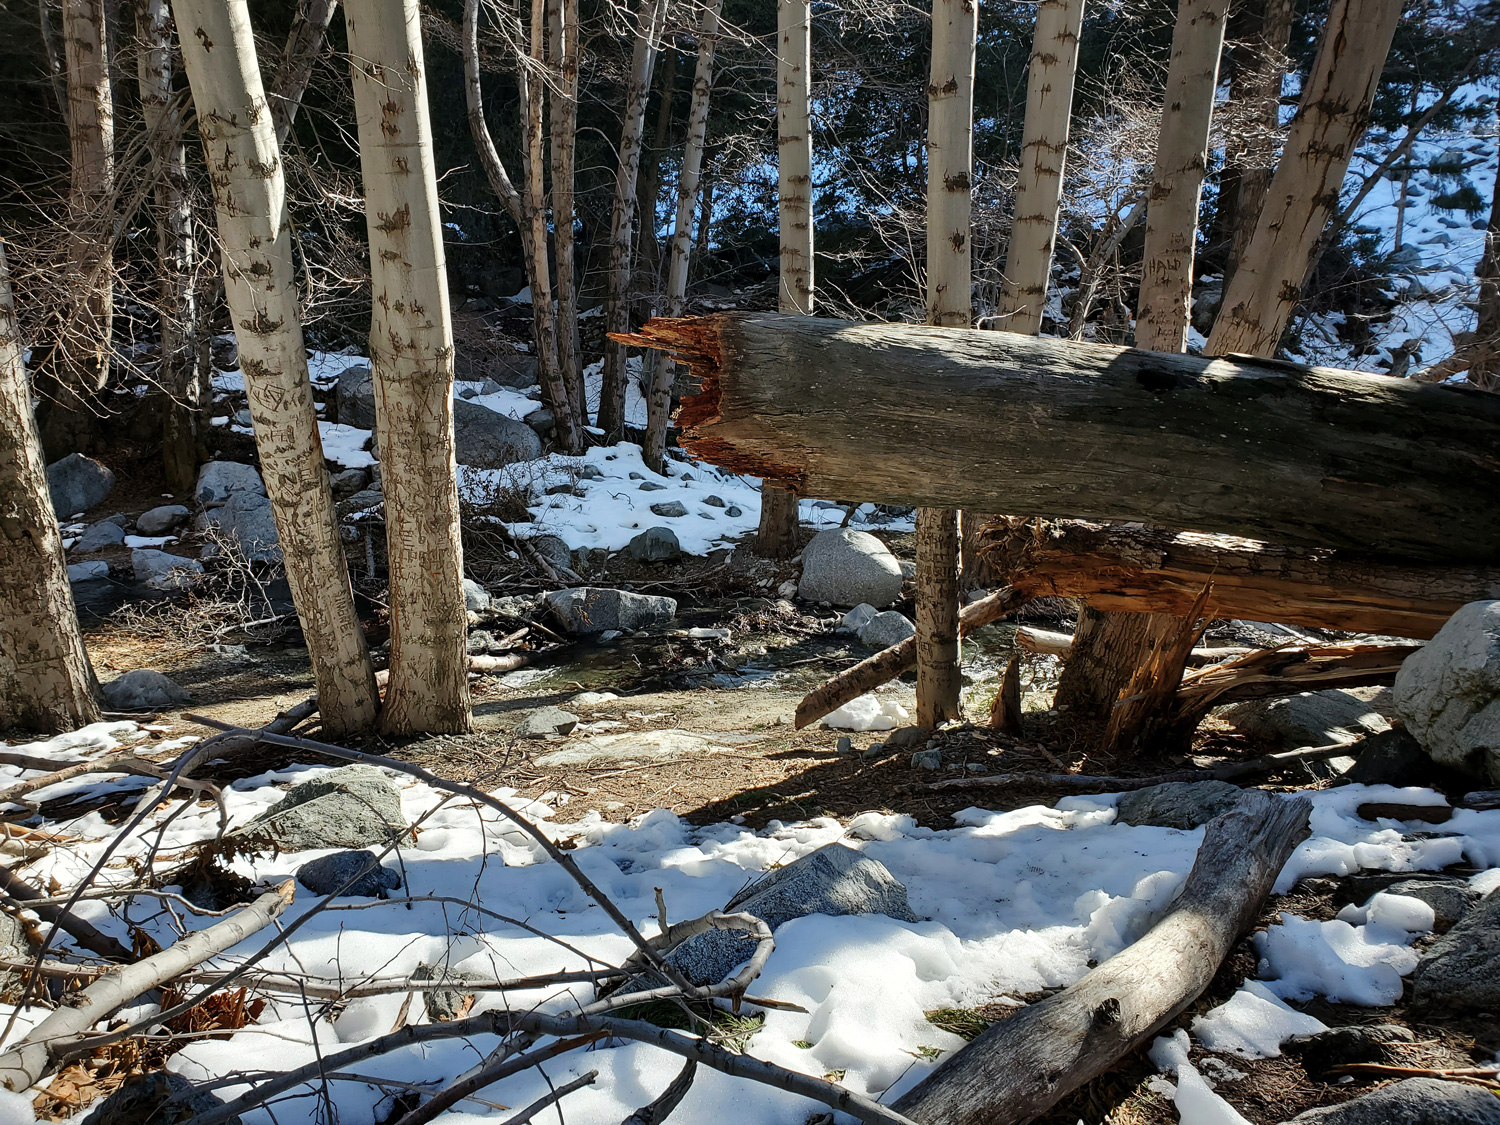 A fallen tree on the Icehouse Canyon Trail, adjacent the stream